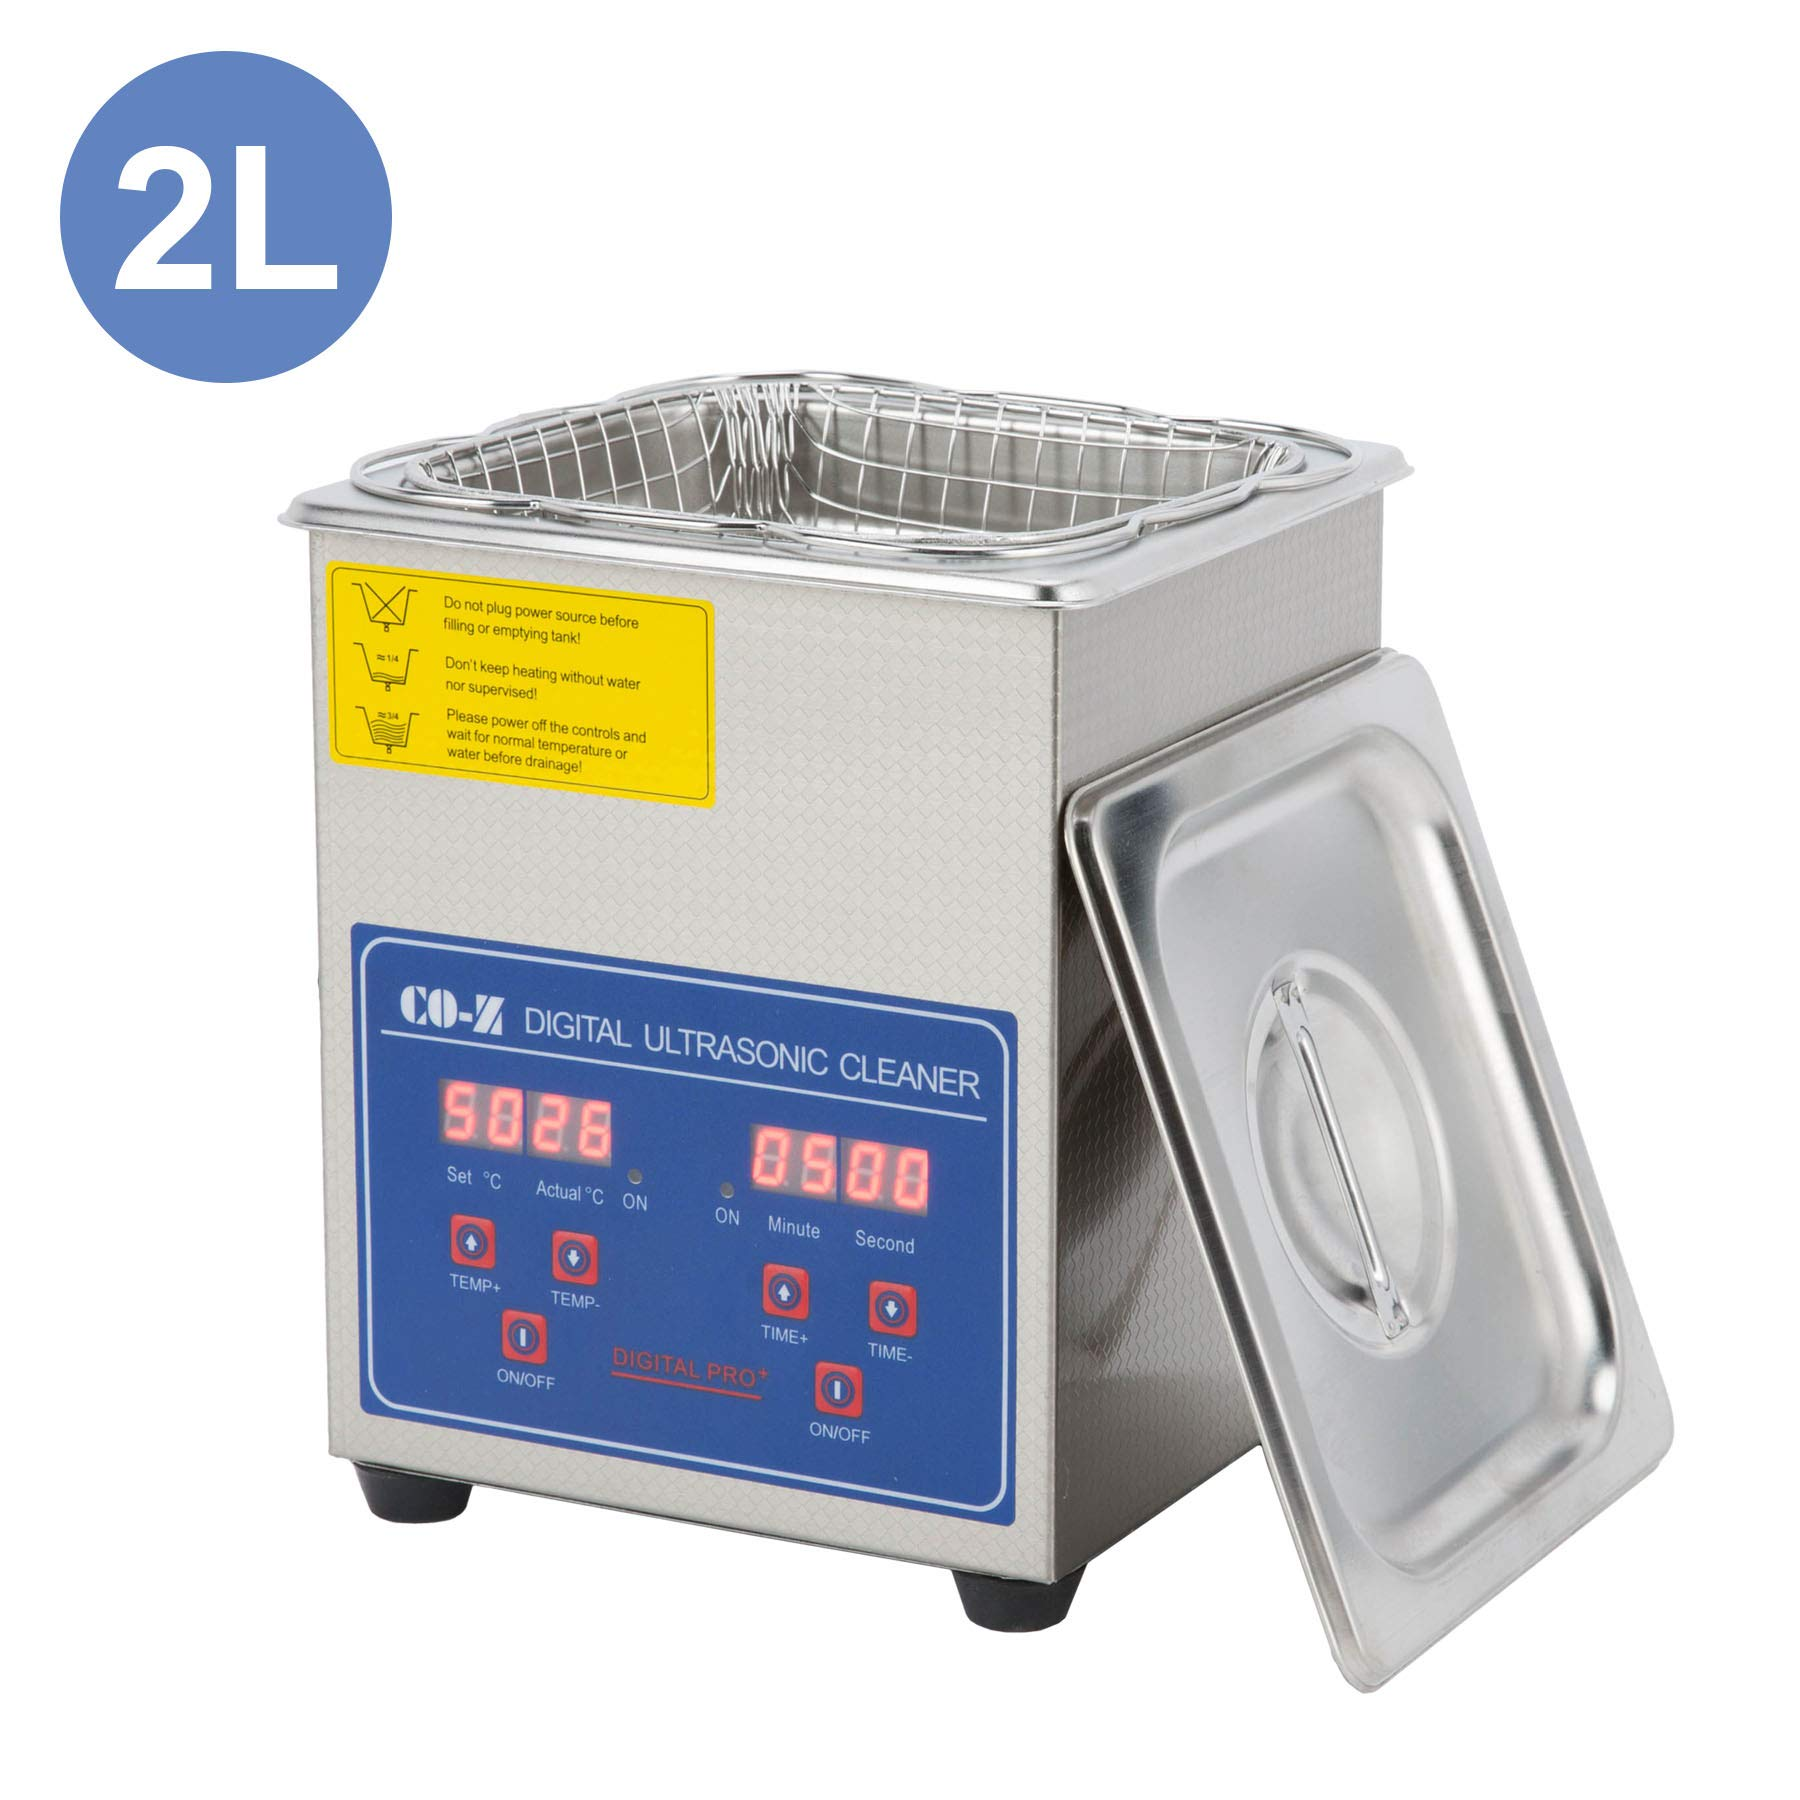 CO-Z 2L Professional Ultrasonic Cleaner with Digital Timer&Heater for Jewelry Glasses Watch Dentures Small Parts Circuit Board Dental Instrument, Industrial Commercial Ultrasound Cleaning Machine by CO-Z